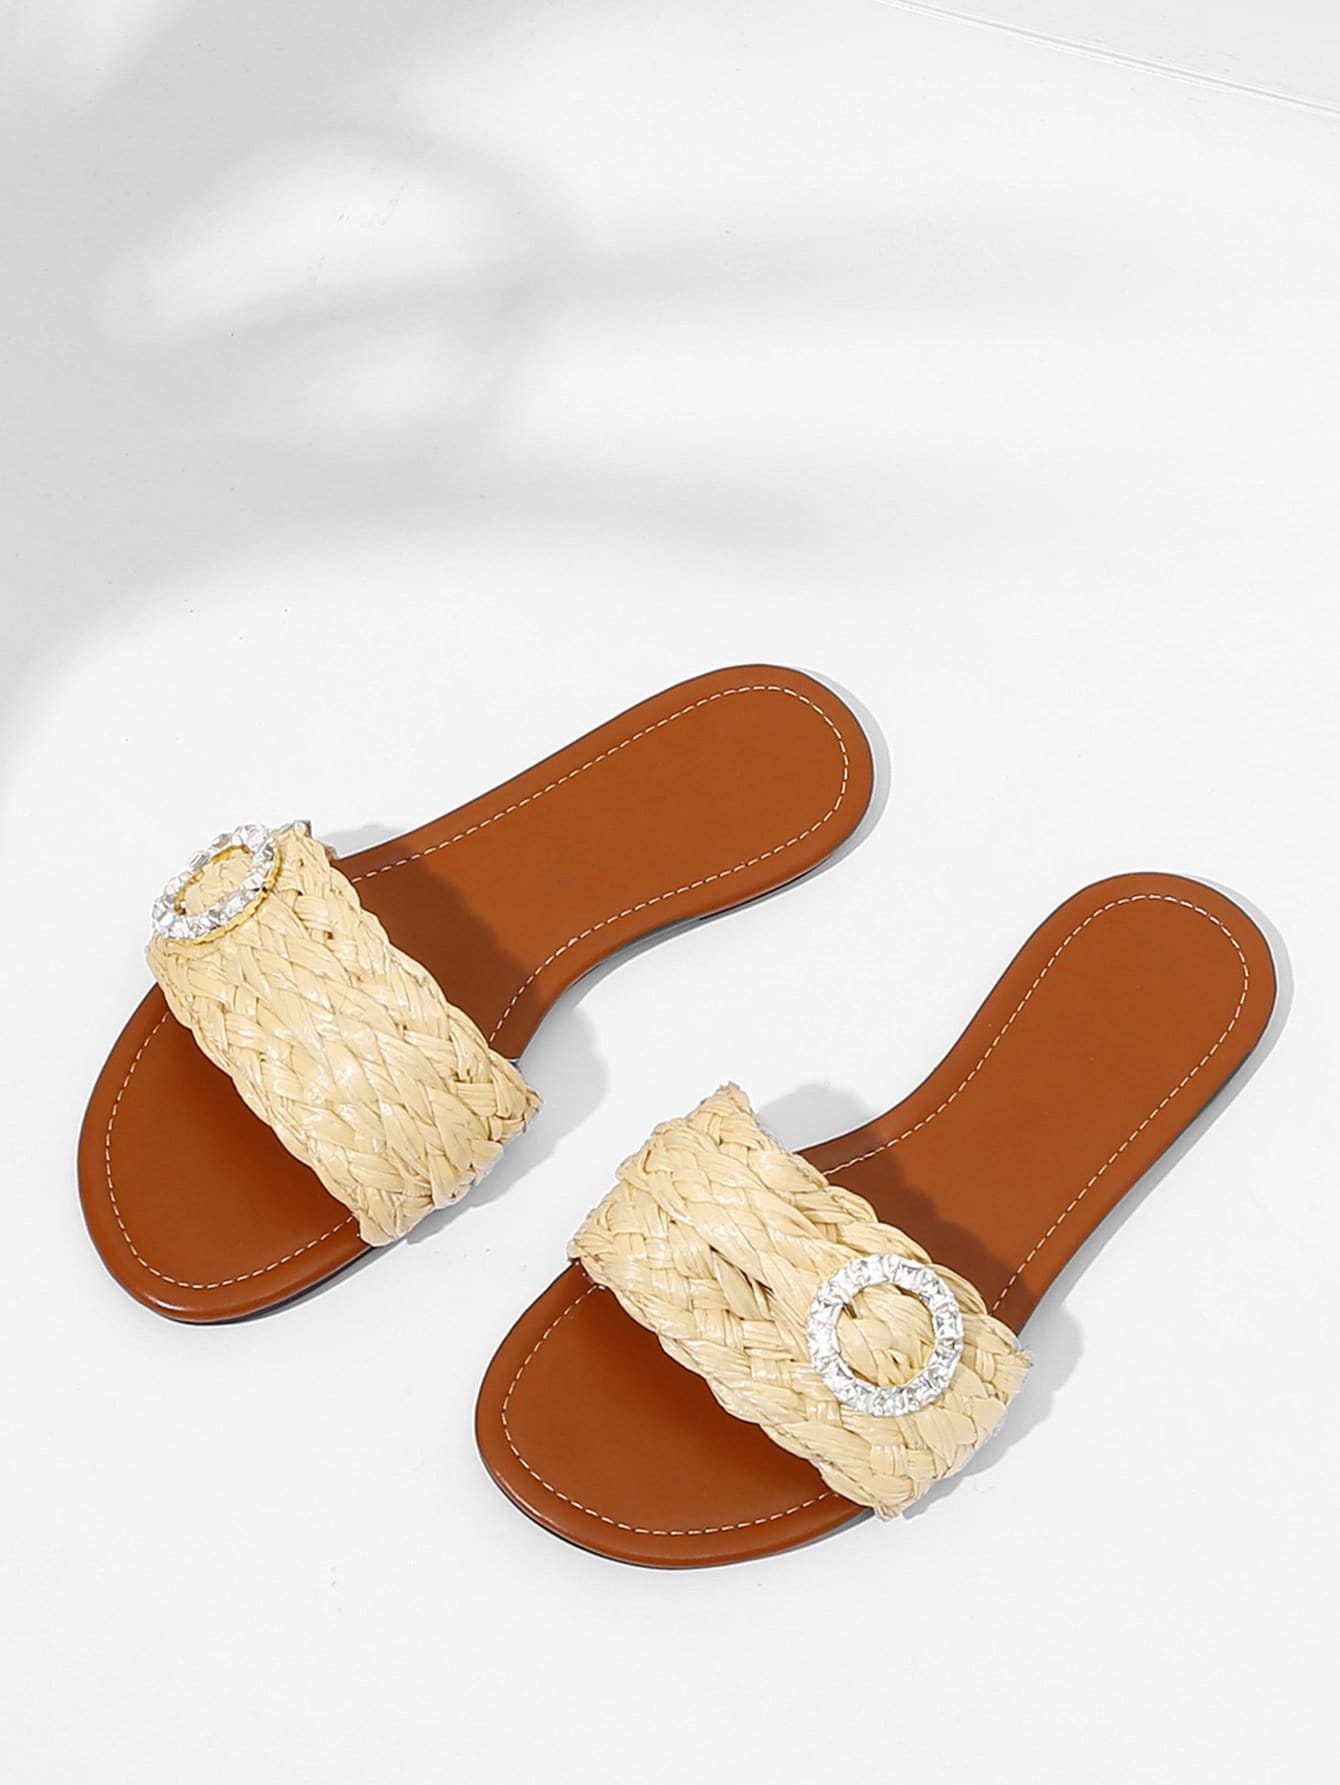 Rhinestone Decorated Woven Flat Sandals woven design straw flat sandals